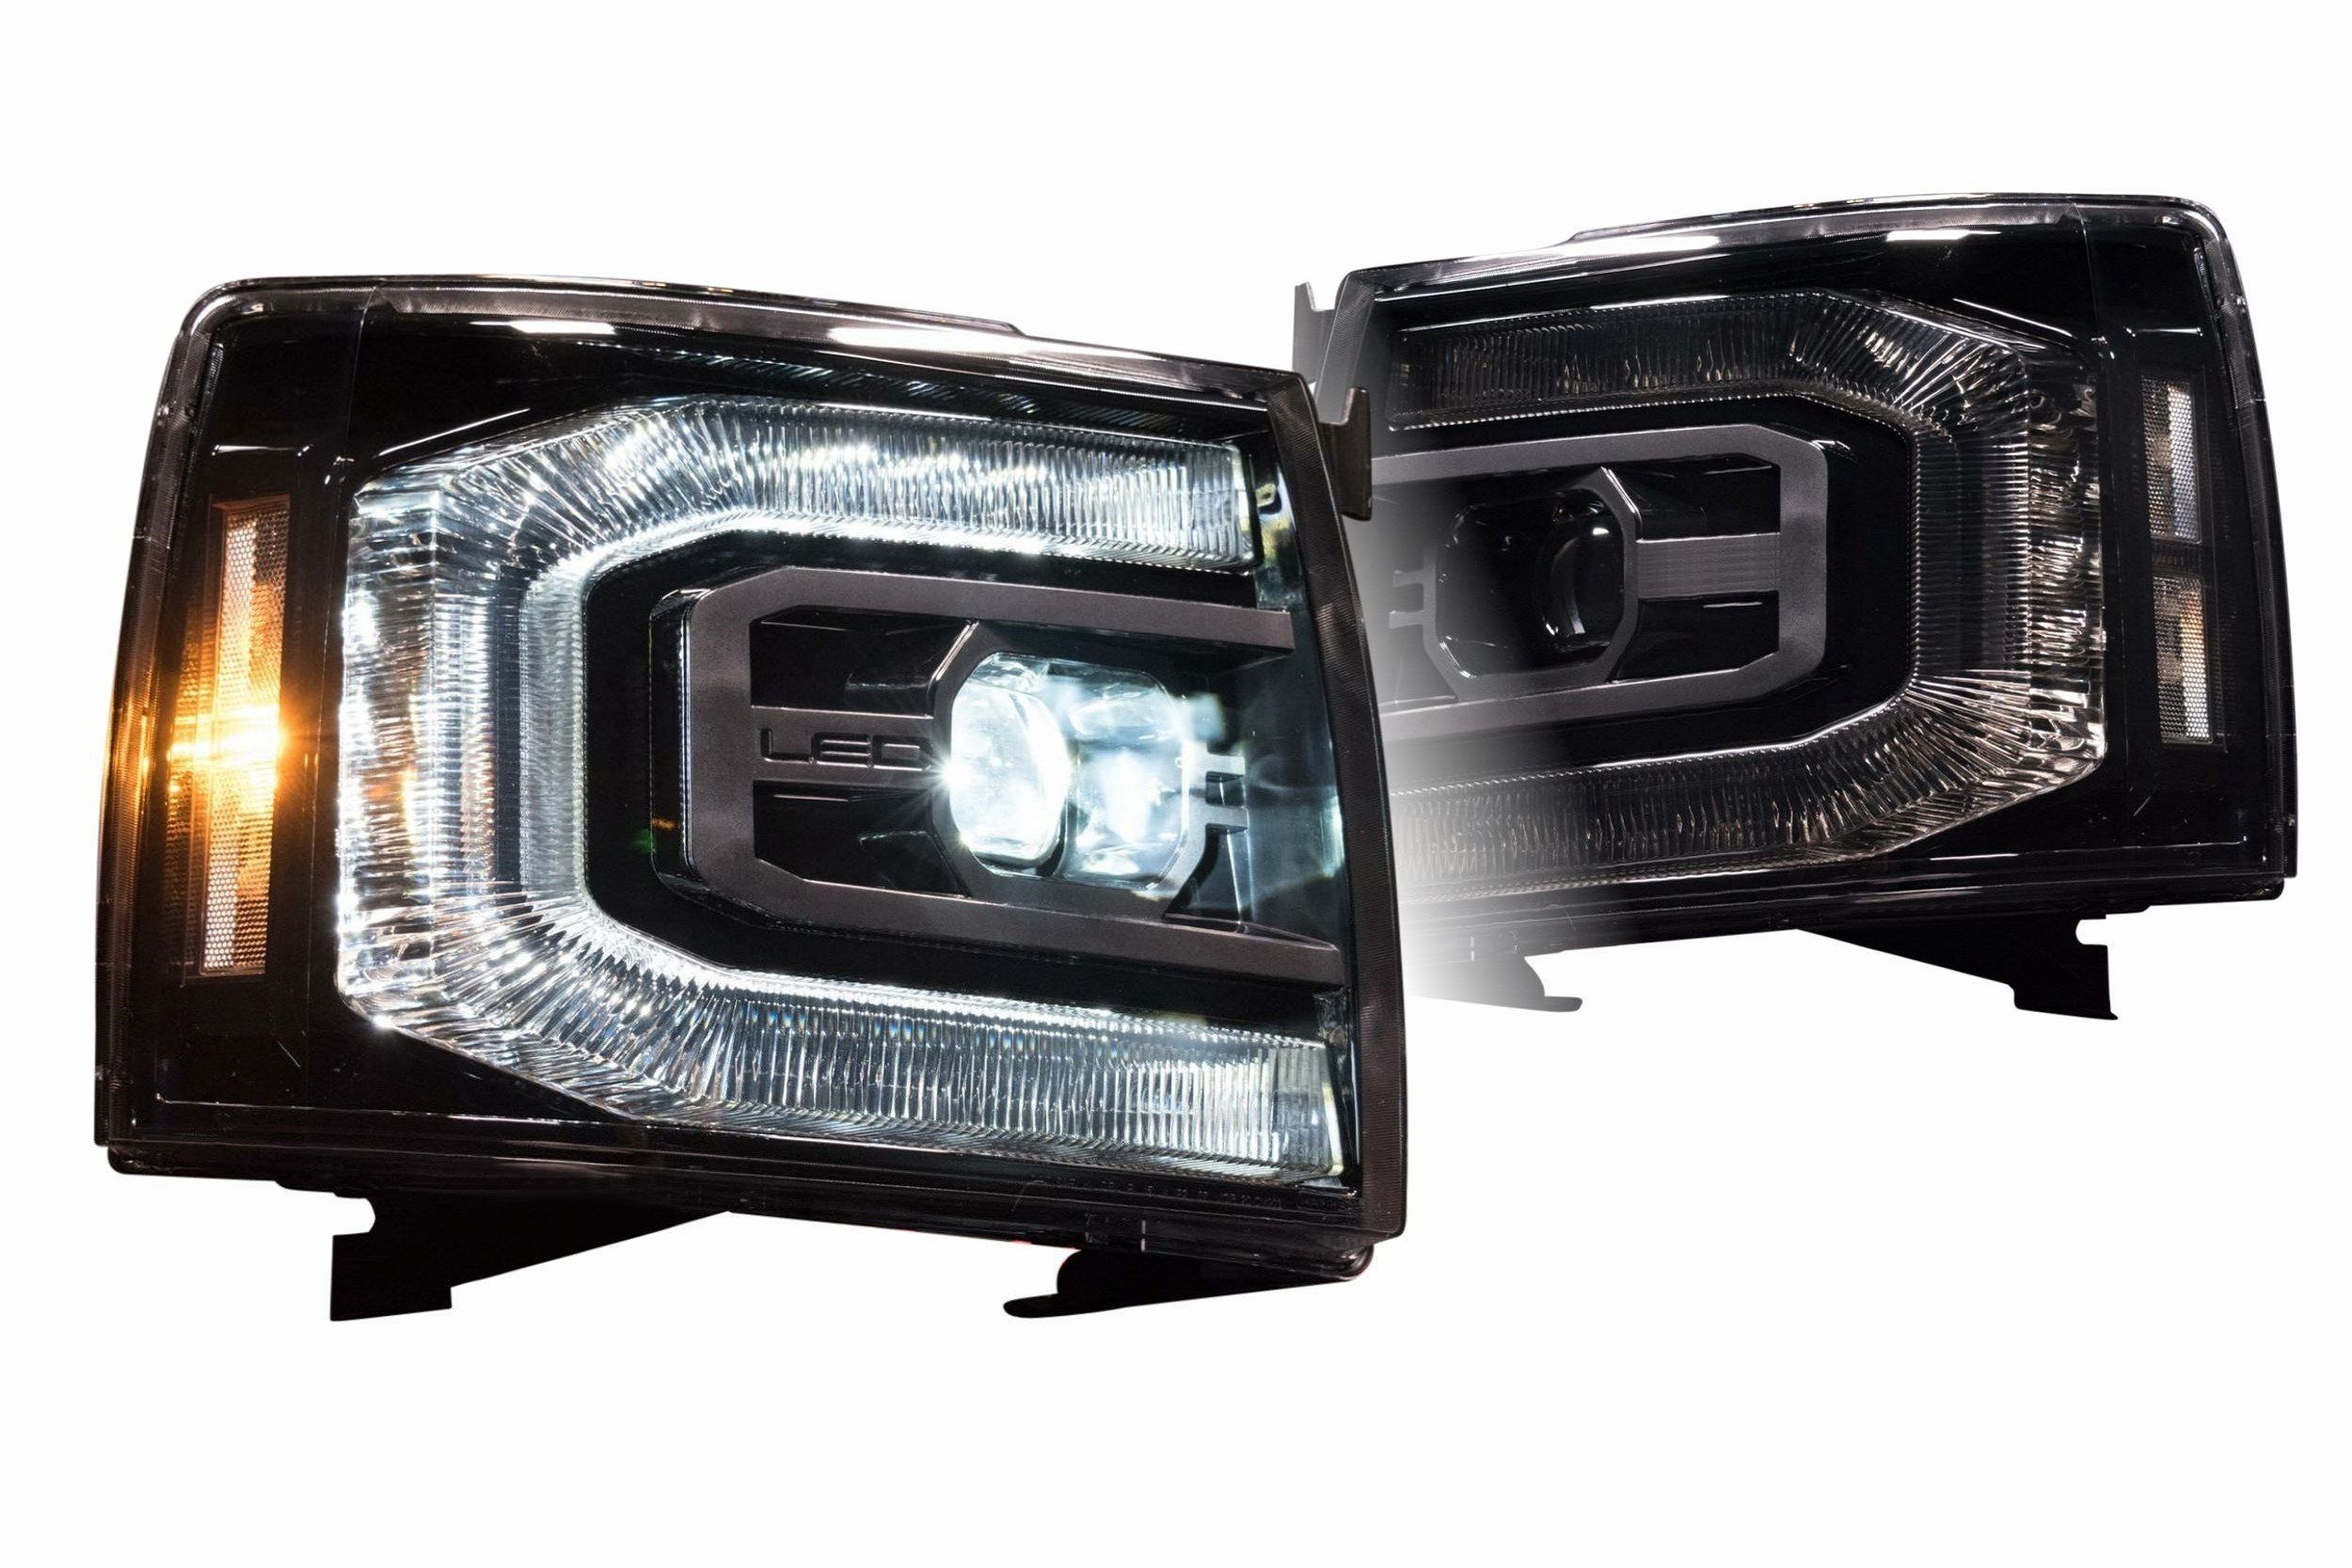 2007 2013 Chevrolet Silverado Xb Led Projector Headlights Complete Led Housings From The Retrofit Source In 2020 Chevrolet Silverado Silverado Led Headlights